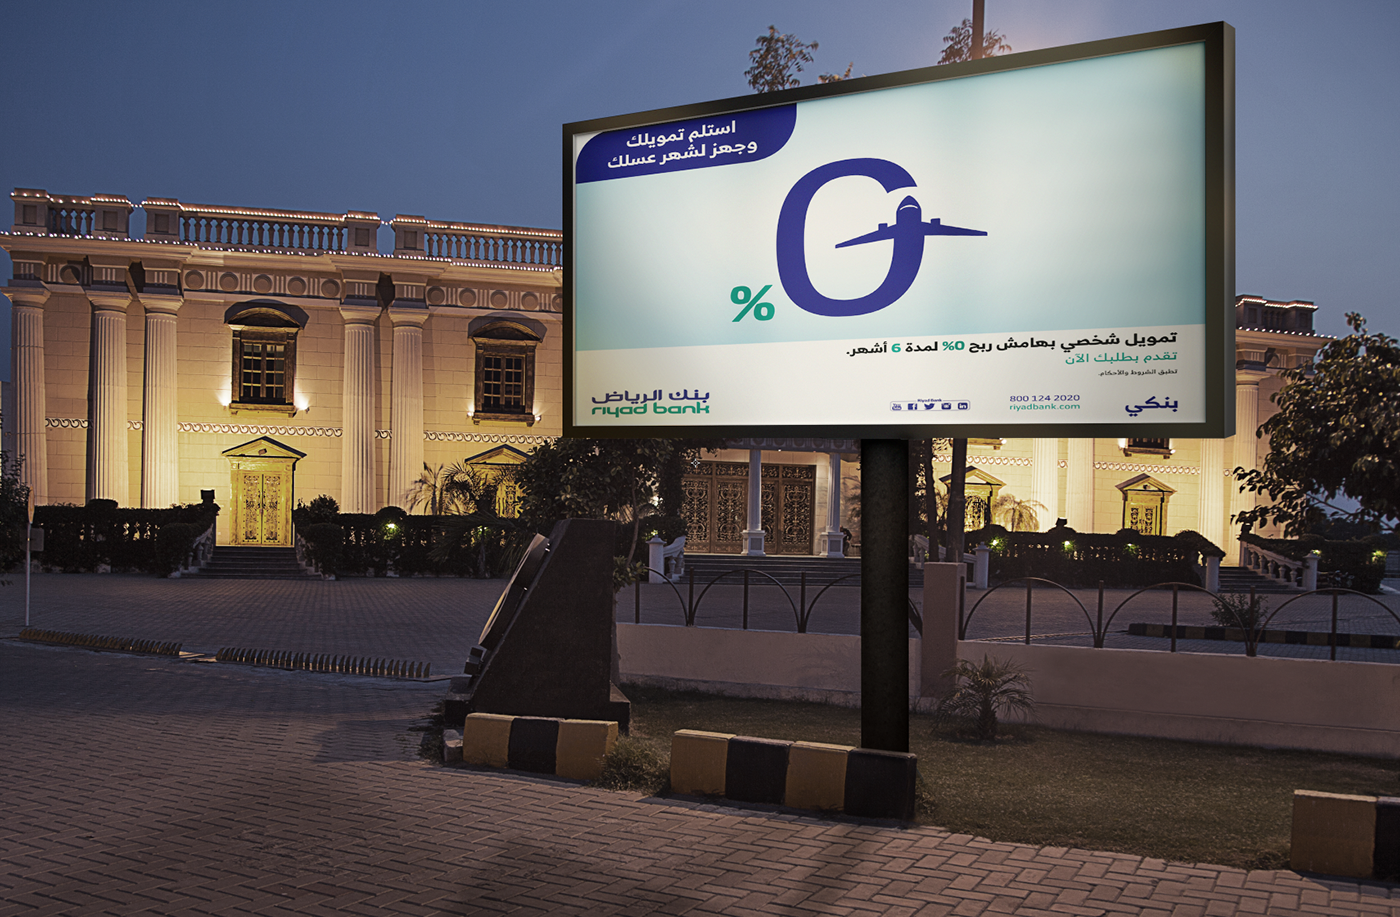 Riyad Bank Personal Loan Atl Campaign On Behance Mobile Advertising Design Personal Loans Mobile Advertising